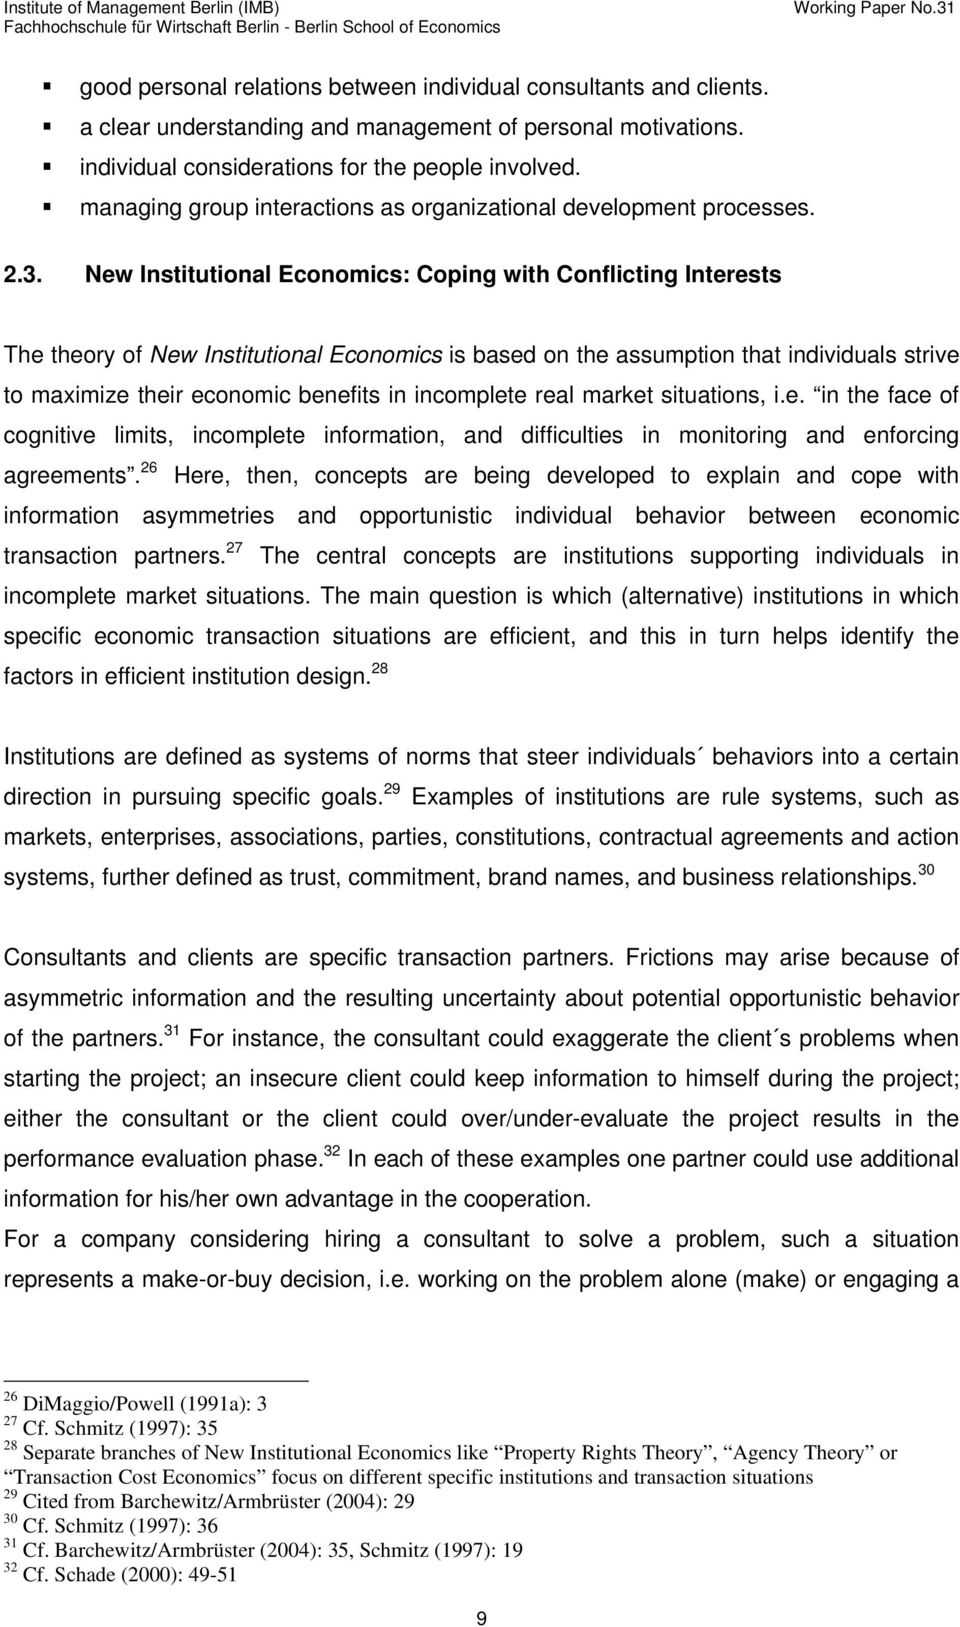 New Institutional Economics: Coping with Conflicting Interests The theory of New Institutional Economics is based on the assumption that individuals strive to maximize their economic benefits in